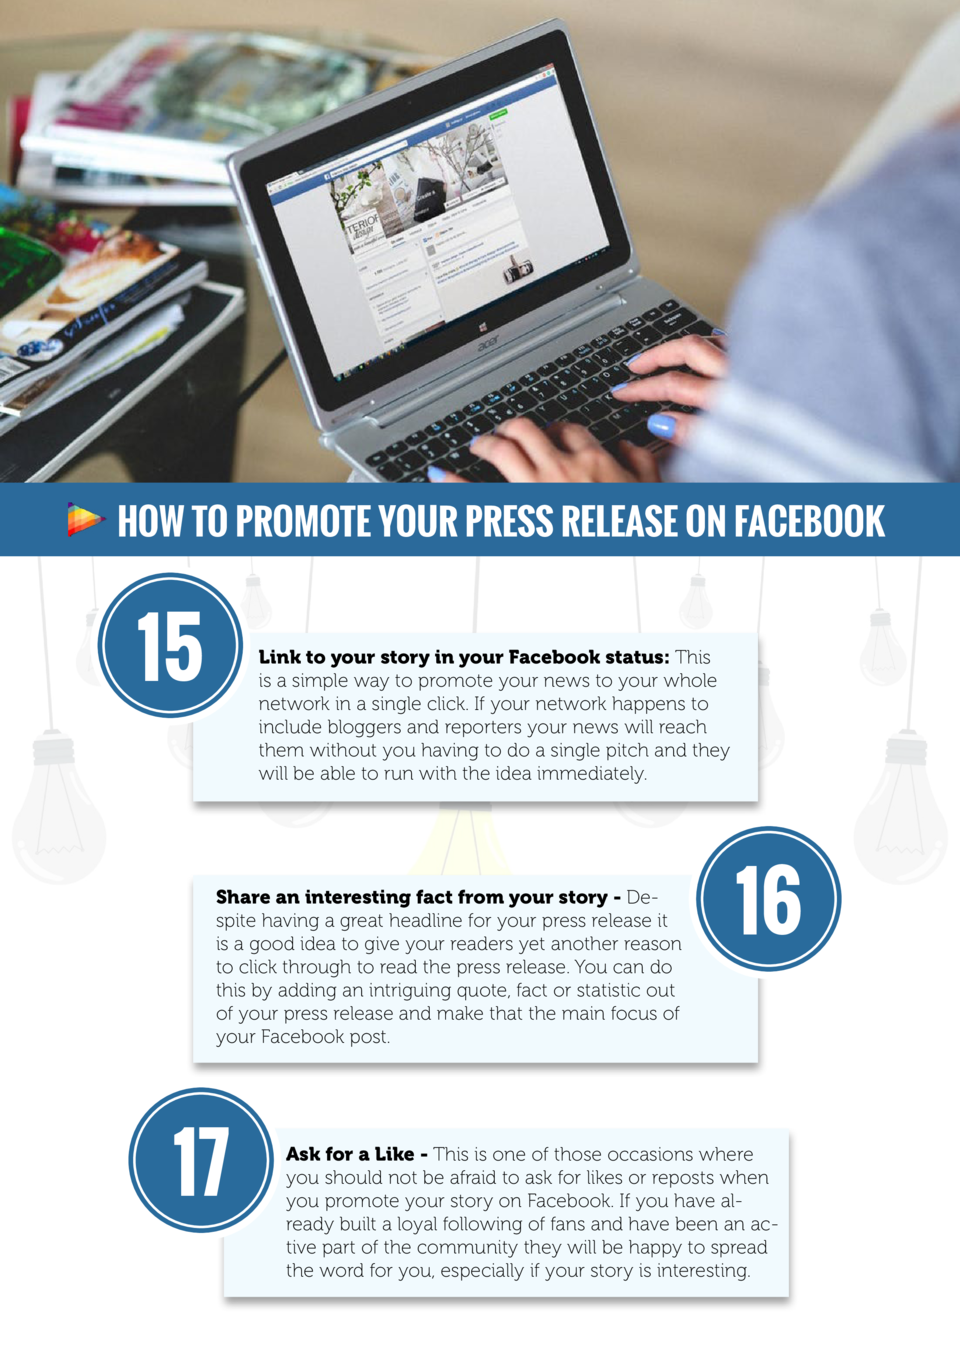 How to promote your press release on Facebook  15  Link to your story in your Facebook status  This is a simple way to pro...